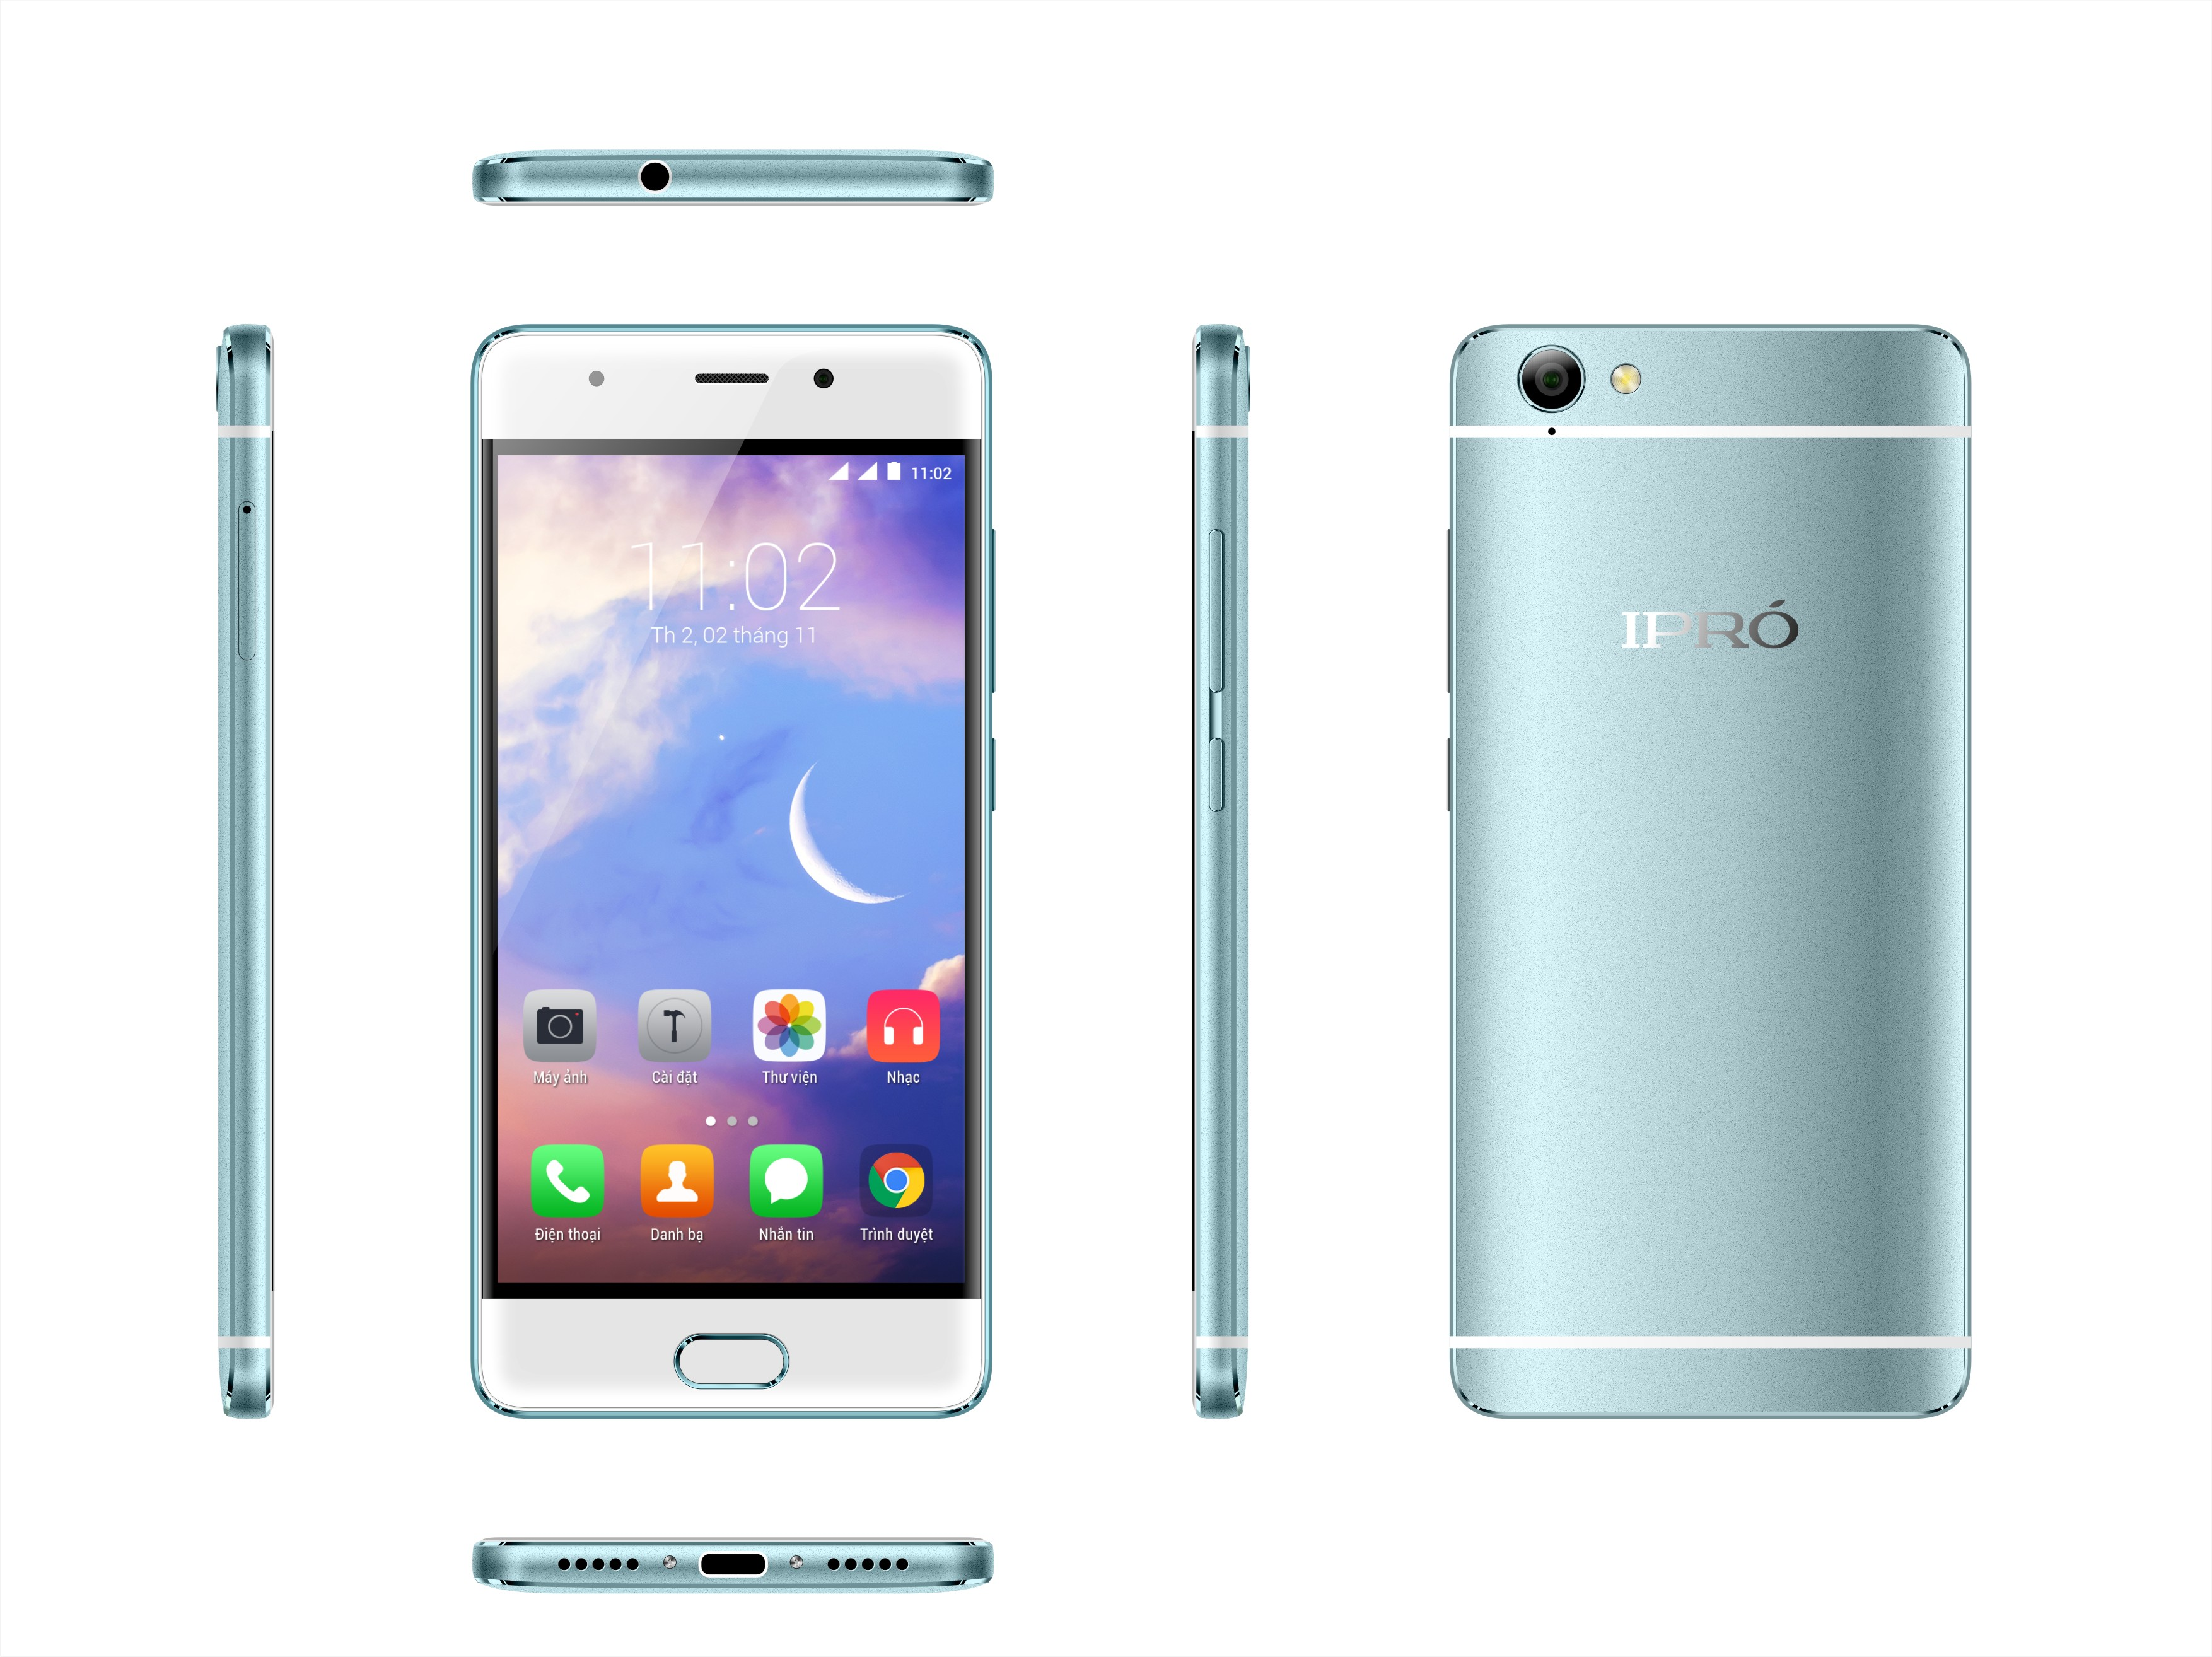 IPRO GALA 6(I950D)- 2350mAh Battery Quad Core China OEM Smartphone 4G Lte Android 6.0 mobile phones all brands Super Slim LTE